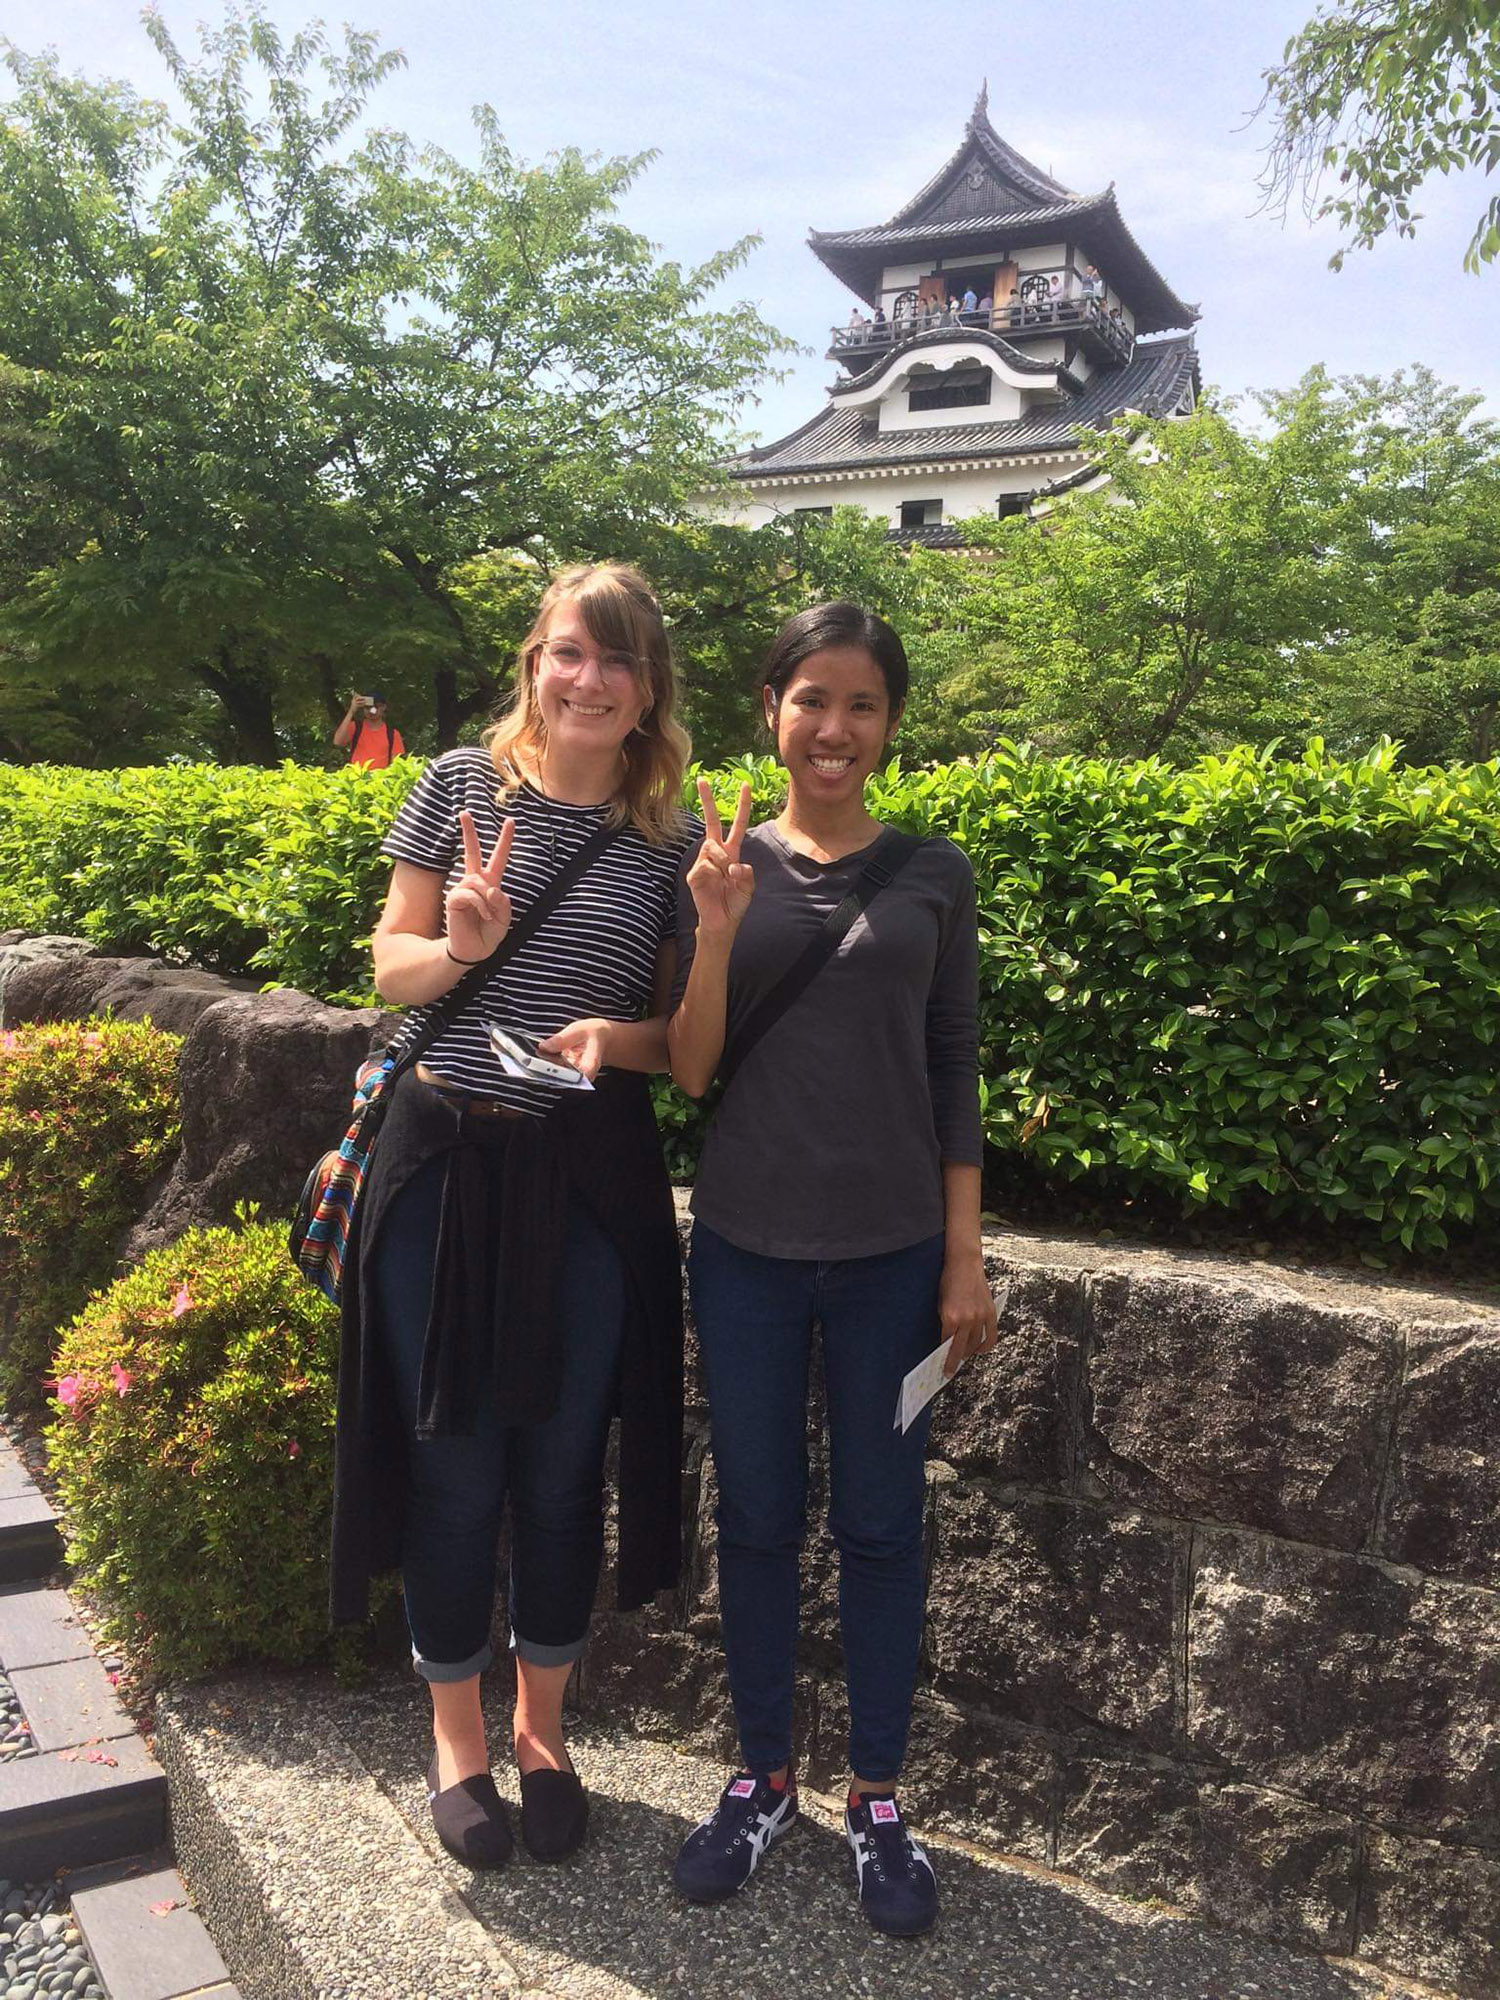 Two students, posed and smiling in front of the Inuyama Castle on a sunny day